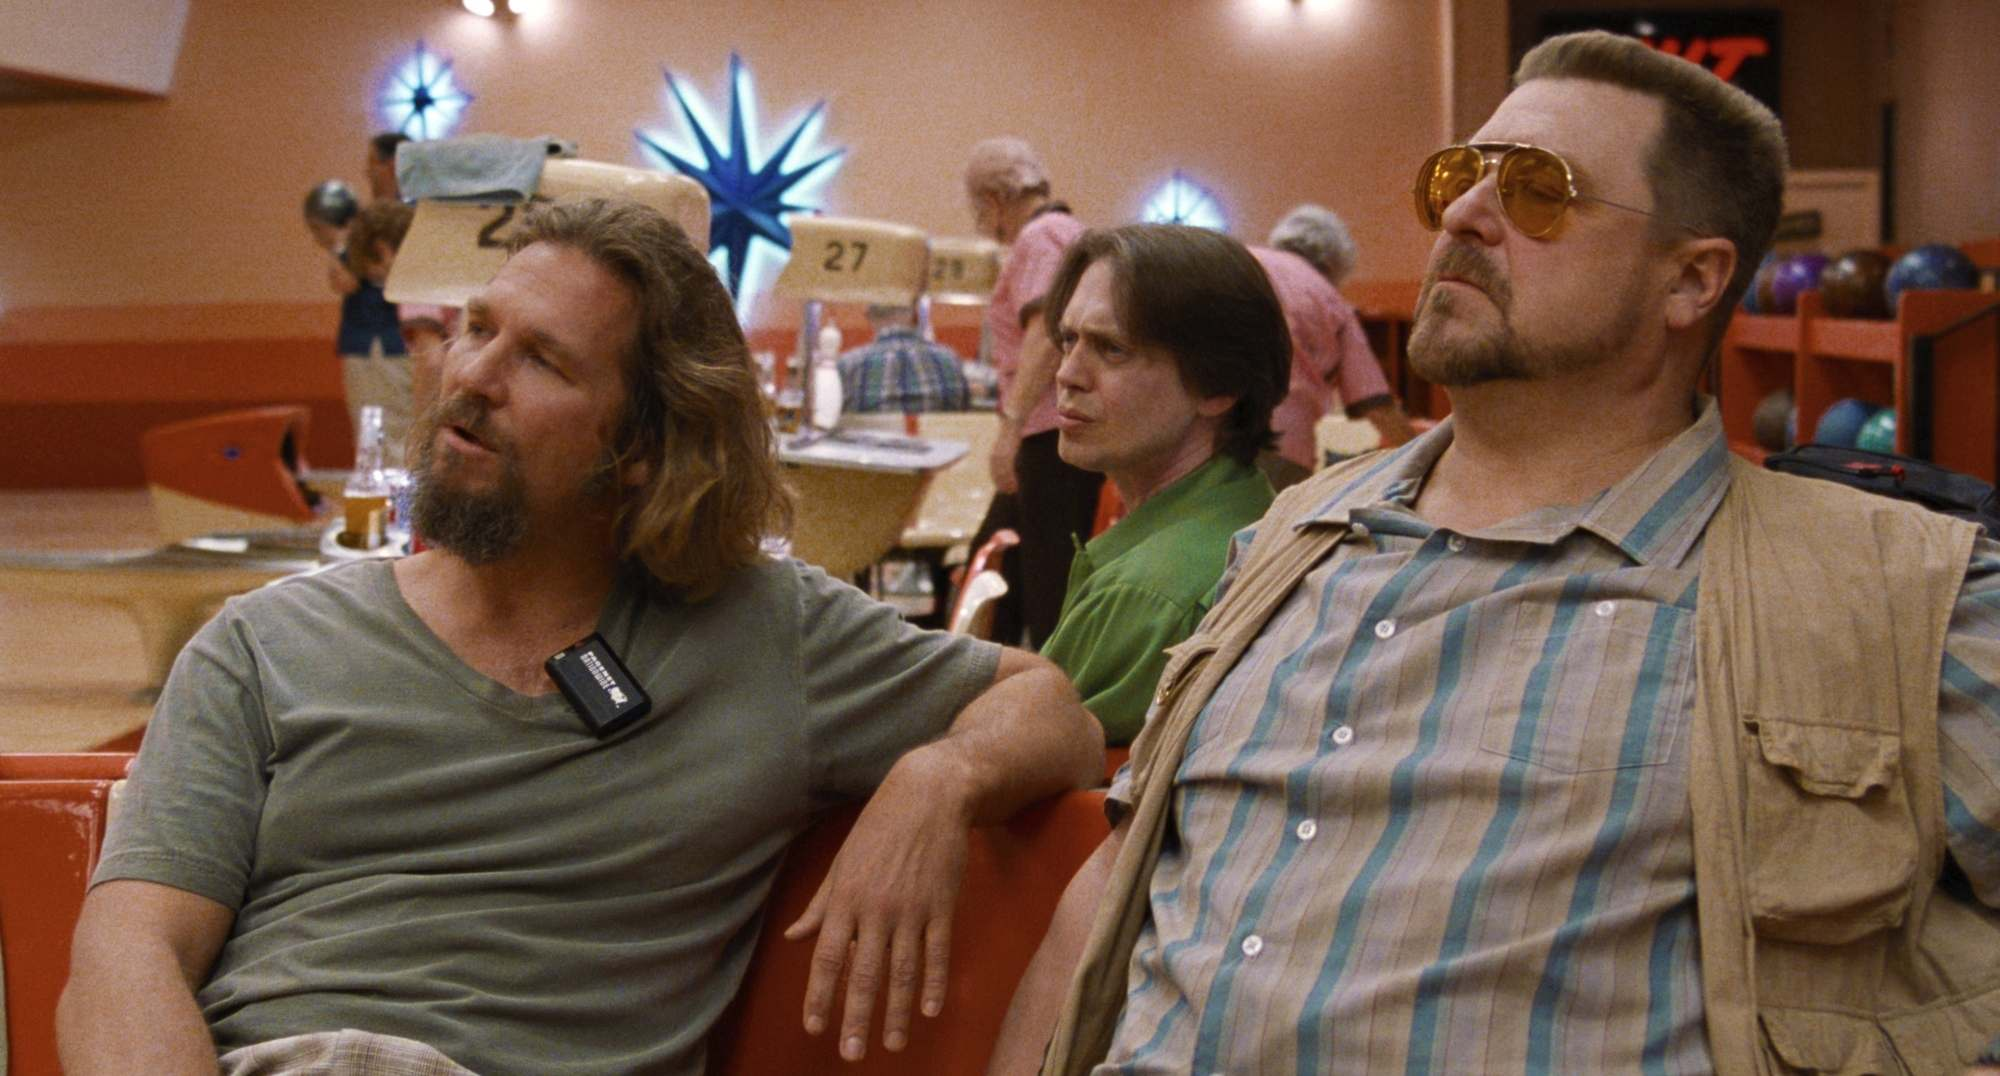 Filmszene aus The Big Lebowski